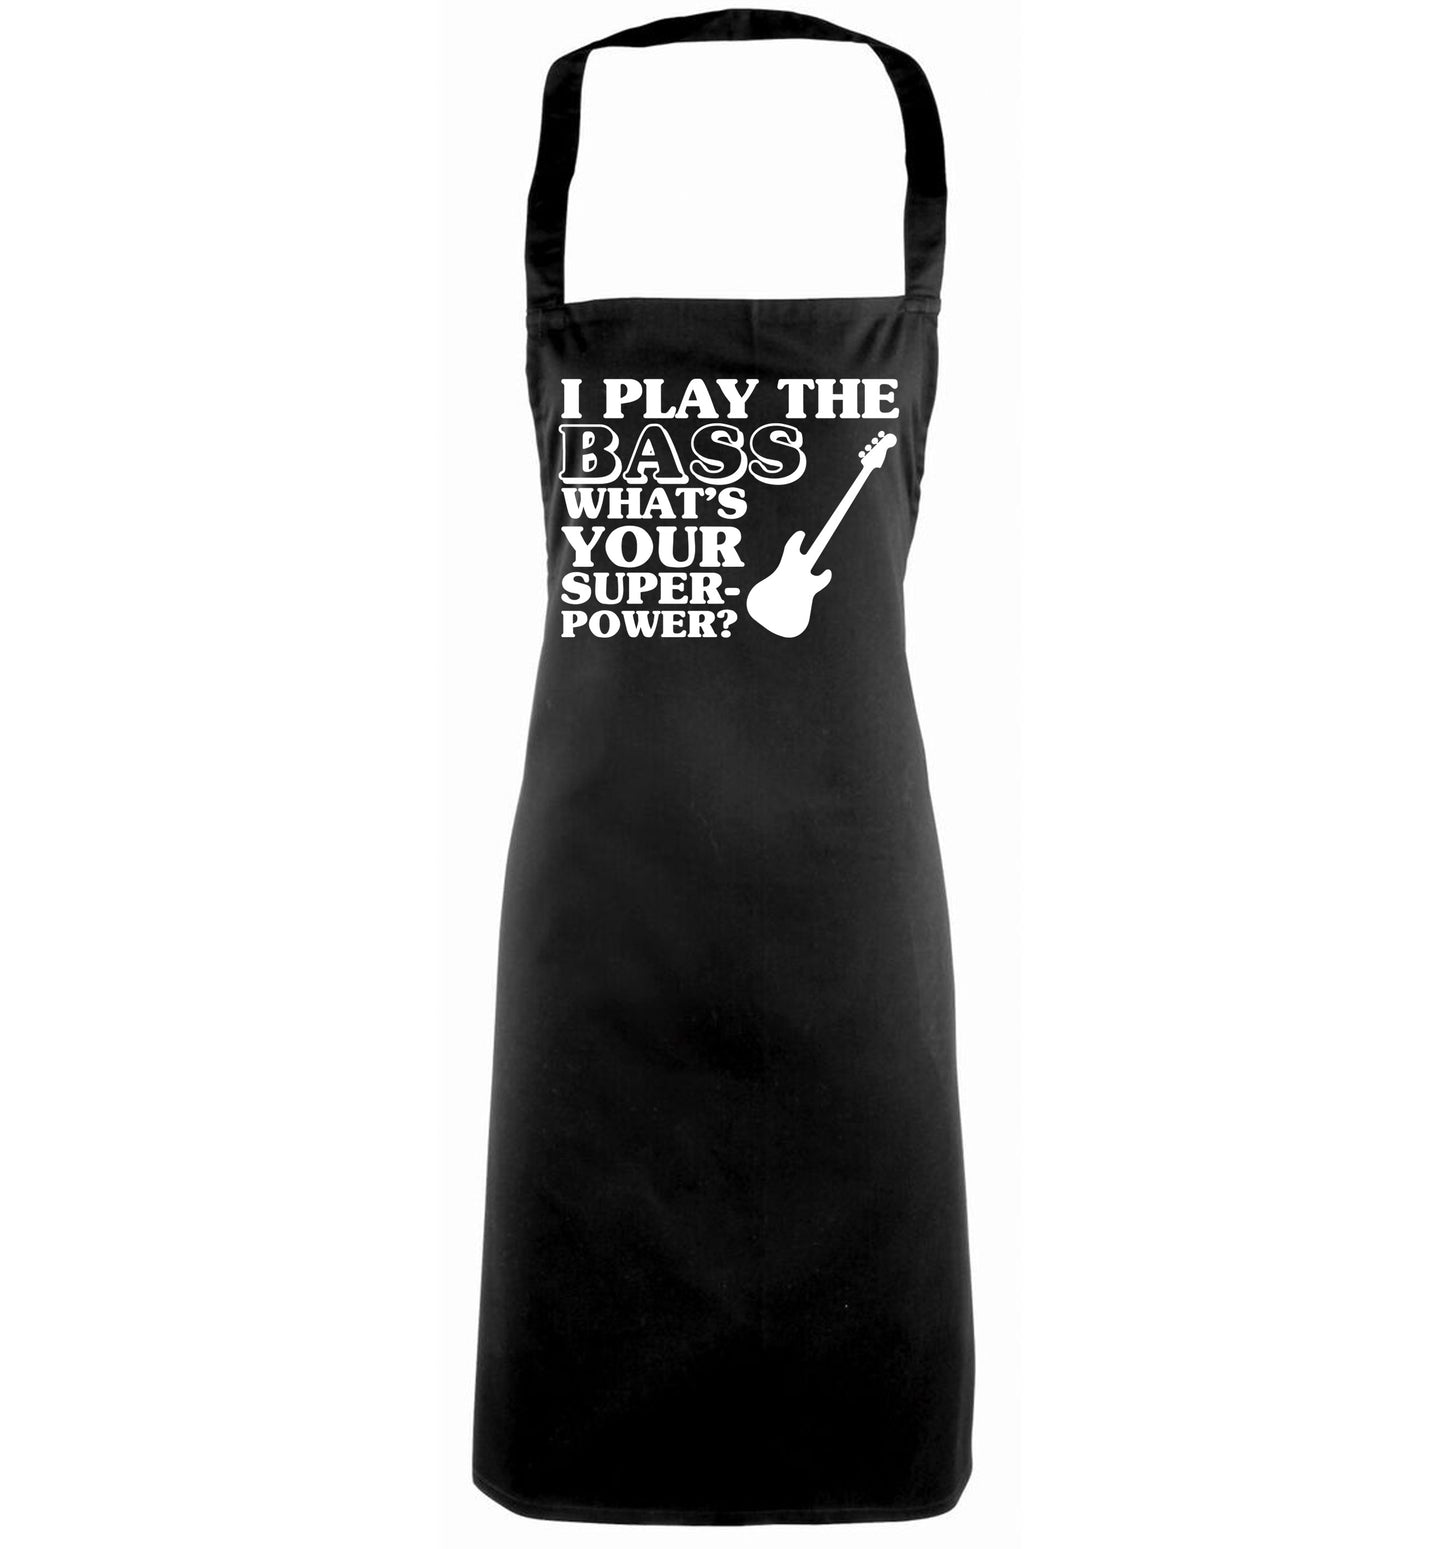 I play the bass what's your superpower? black apron